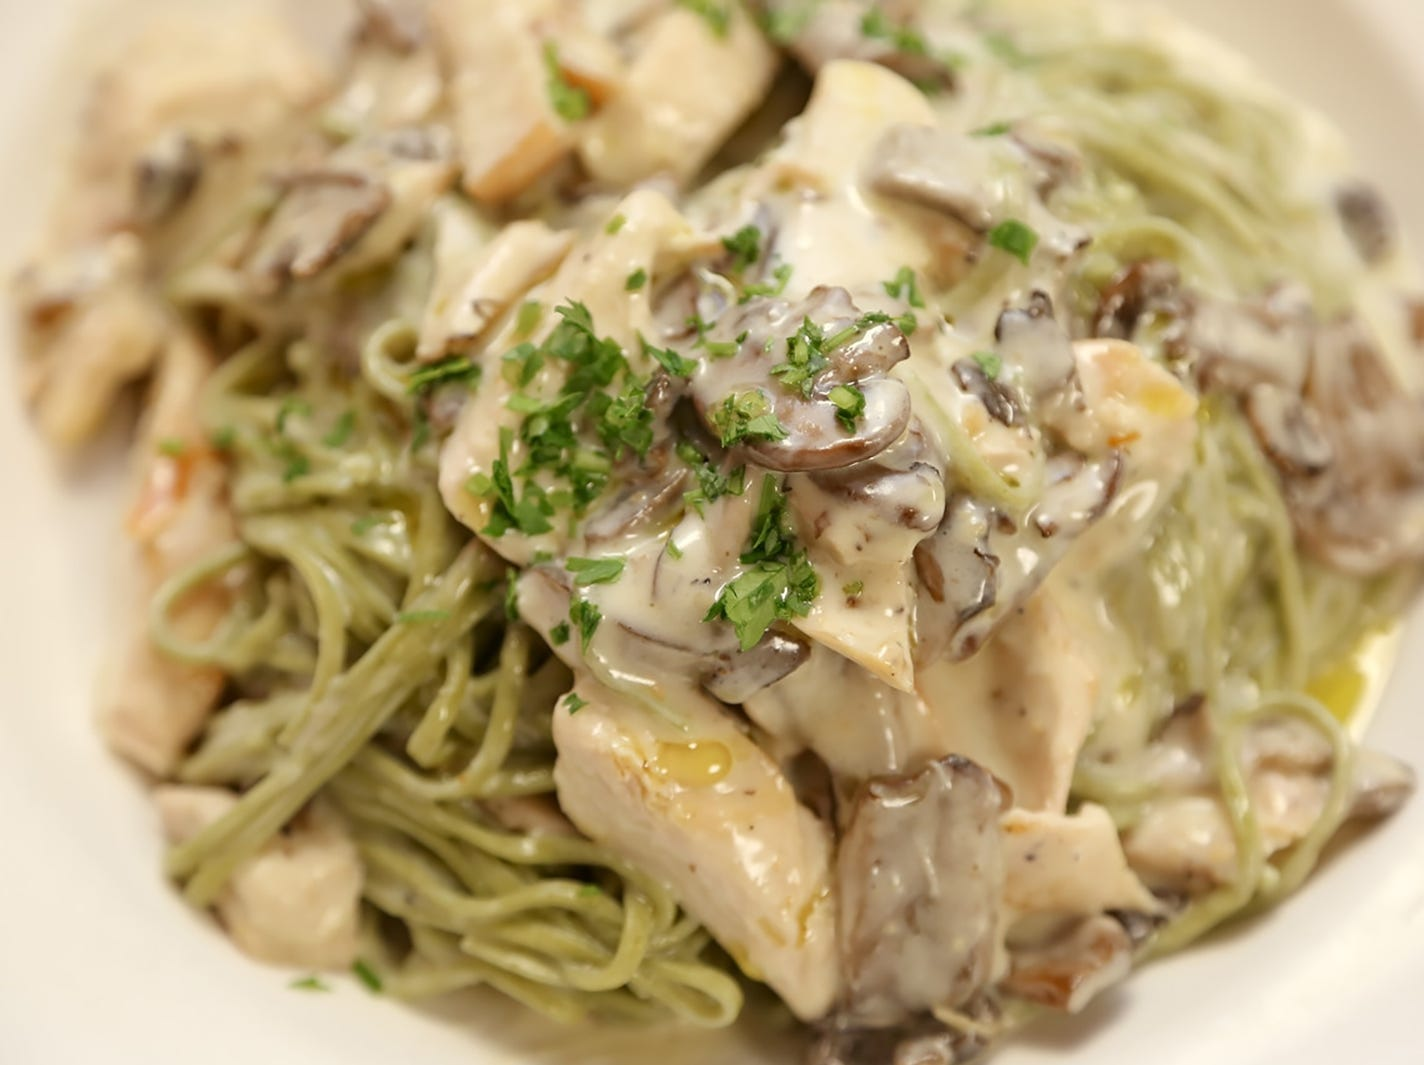 Tagliolini with roasted chicken, mushrooms and a creamy truffle sauce at the new La Trattoria on Fifth Avenue South in downtown Naples.